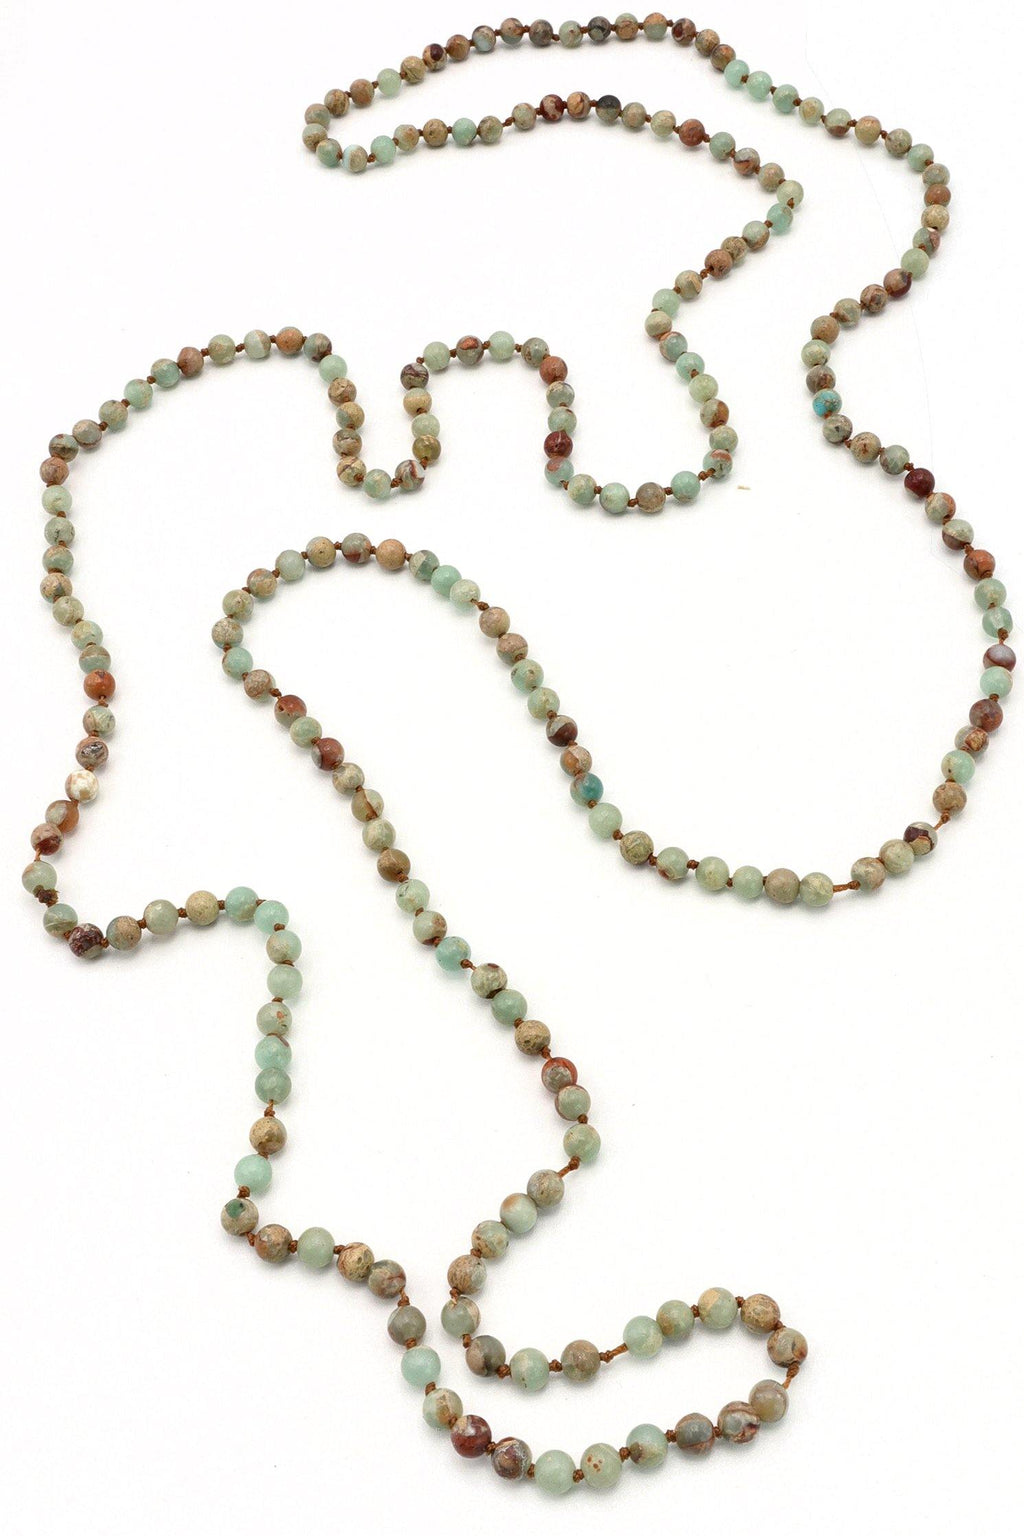 Jasper Gemstone Knotted Necklace - Filosophy